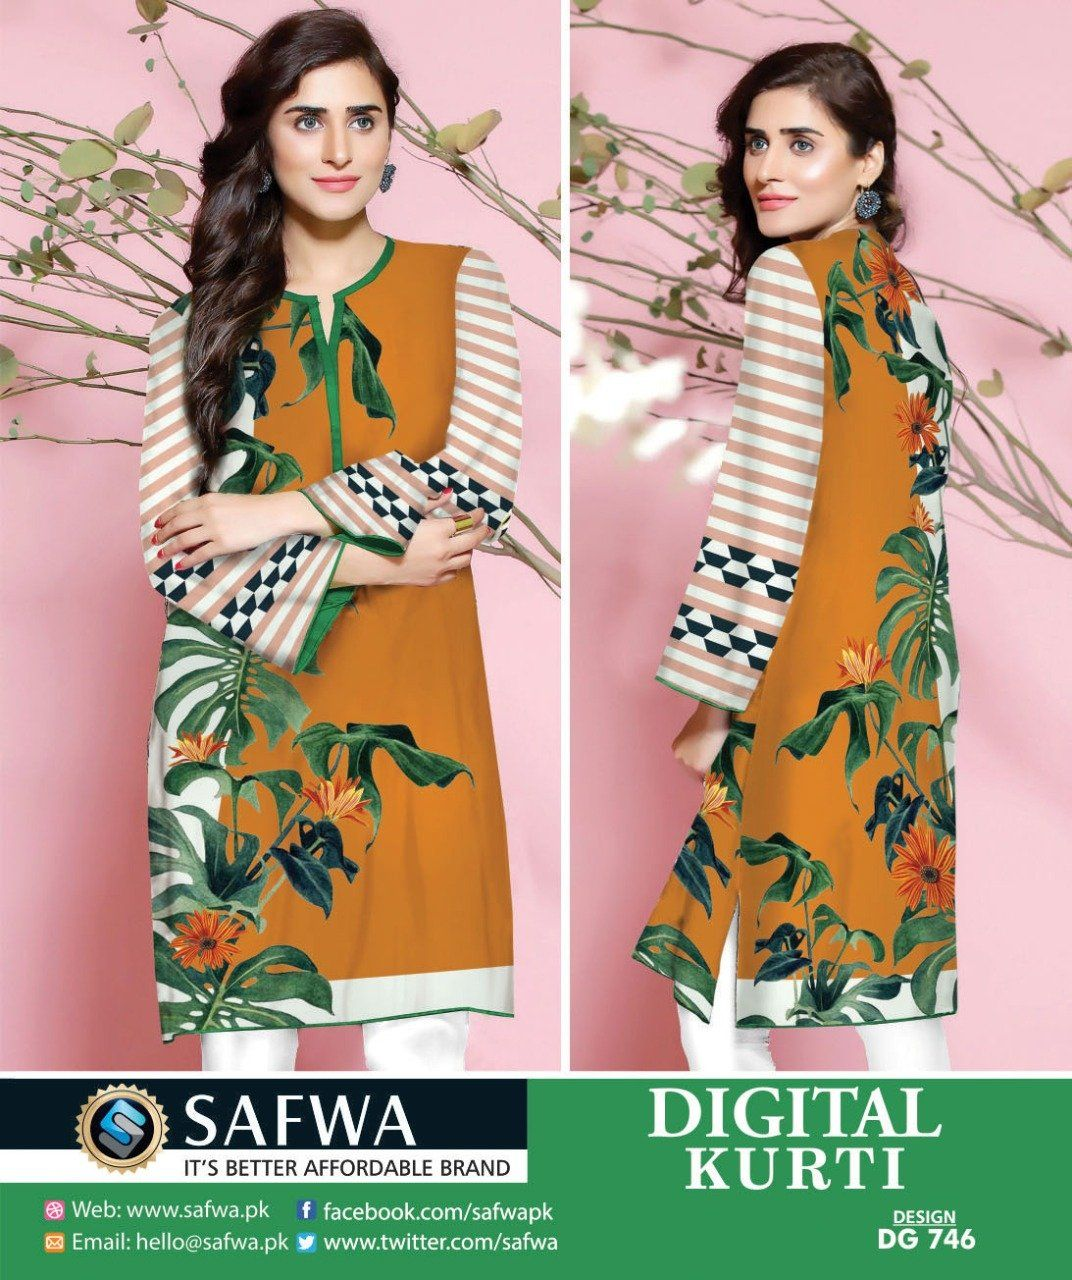 d0945a5e16 Safwa Brand - Price PKR850.00 only - Free Delivery! - Cash on Delivery